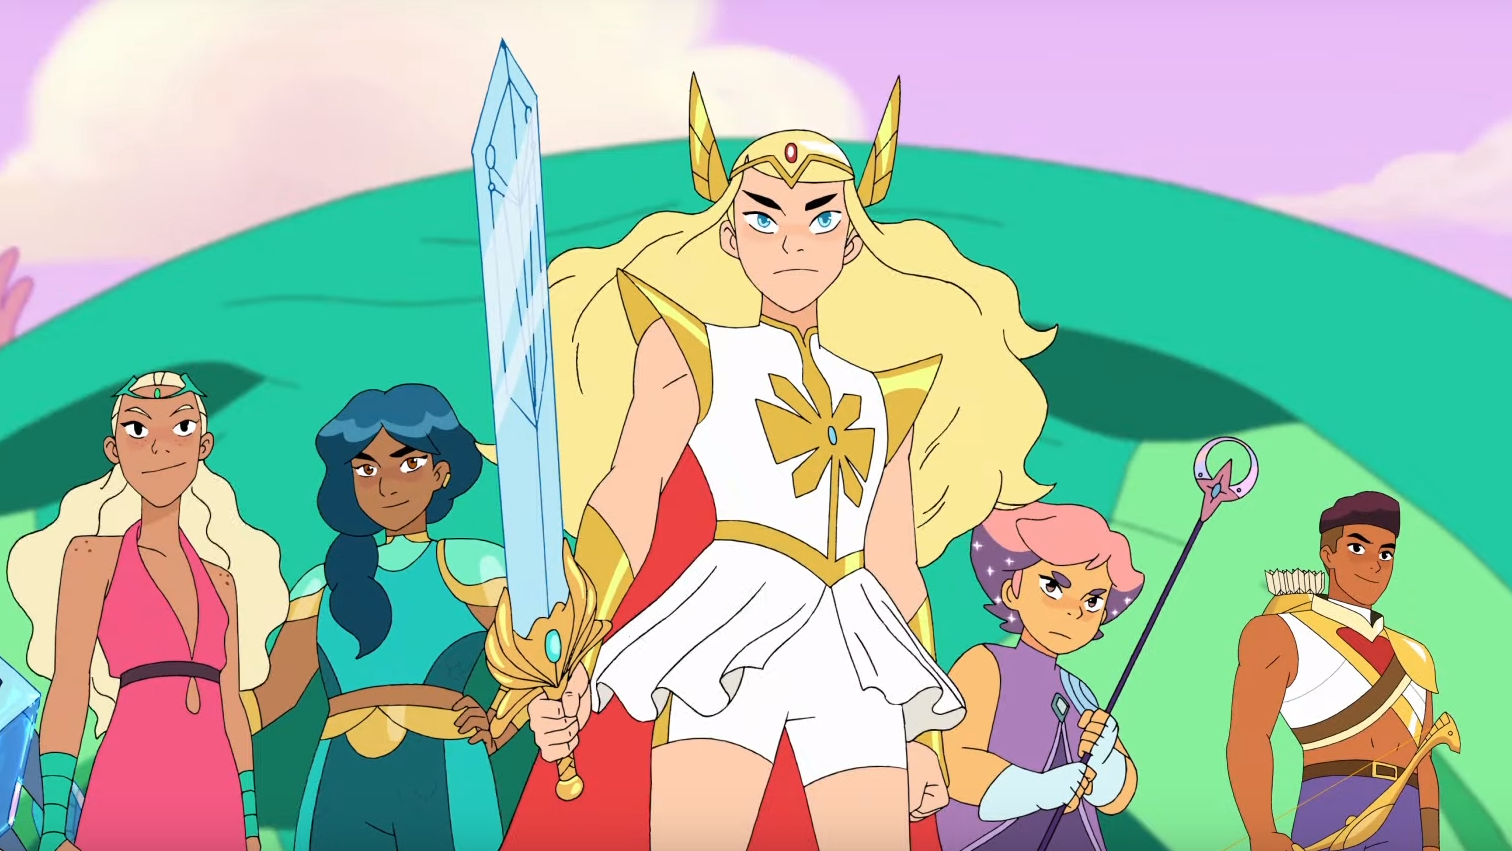 Etheria Descends Further Into Conflict In The Trailer For The Second Season OfShe-Ra And The Princesses Of Power